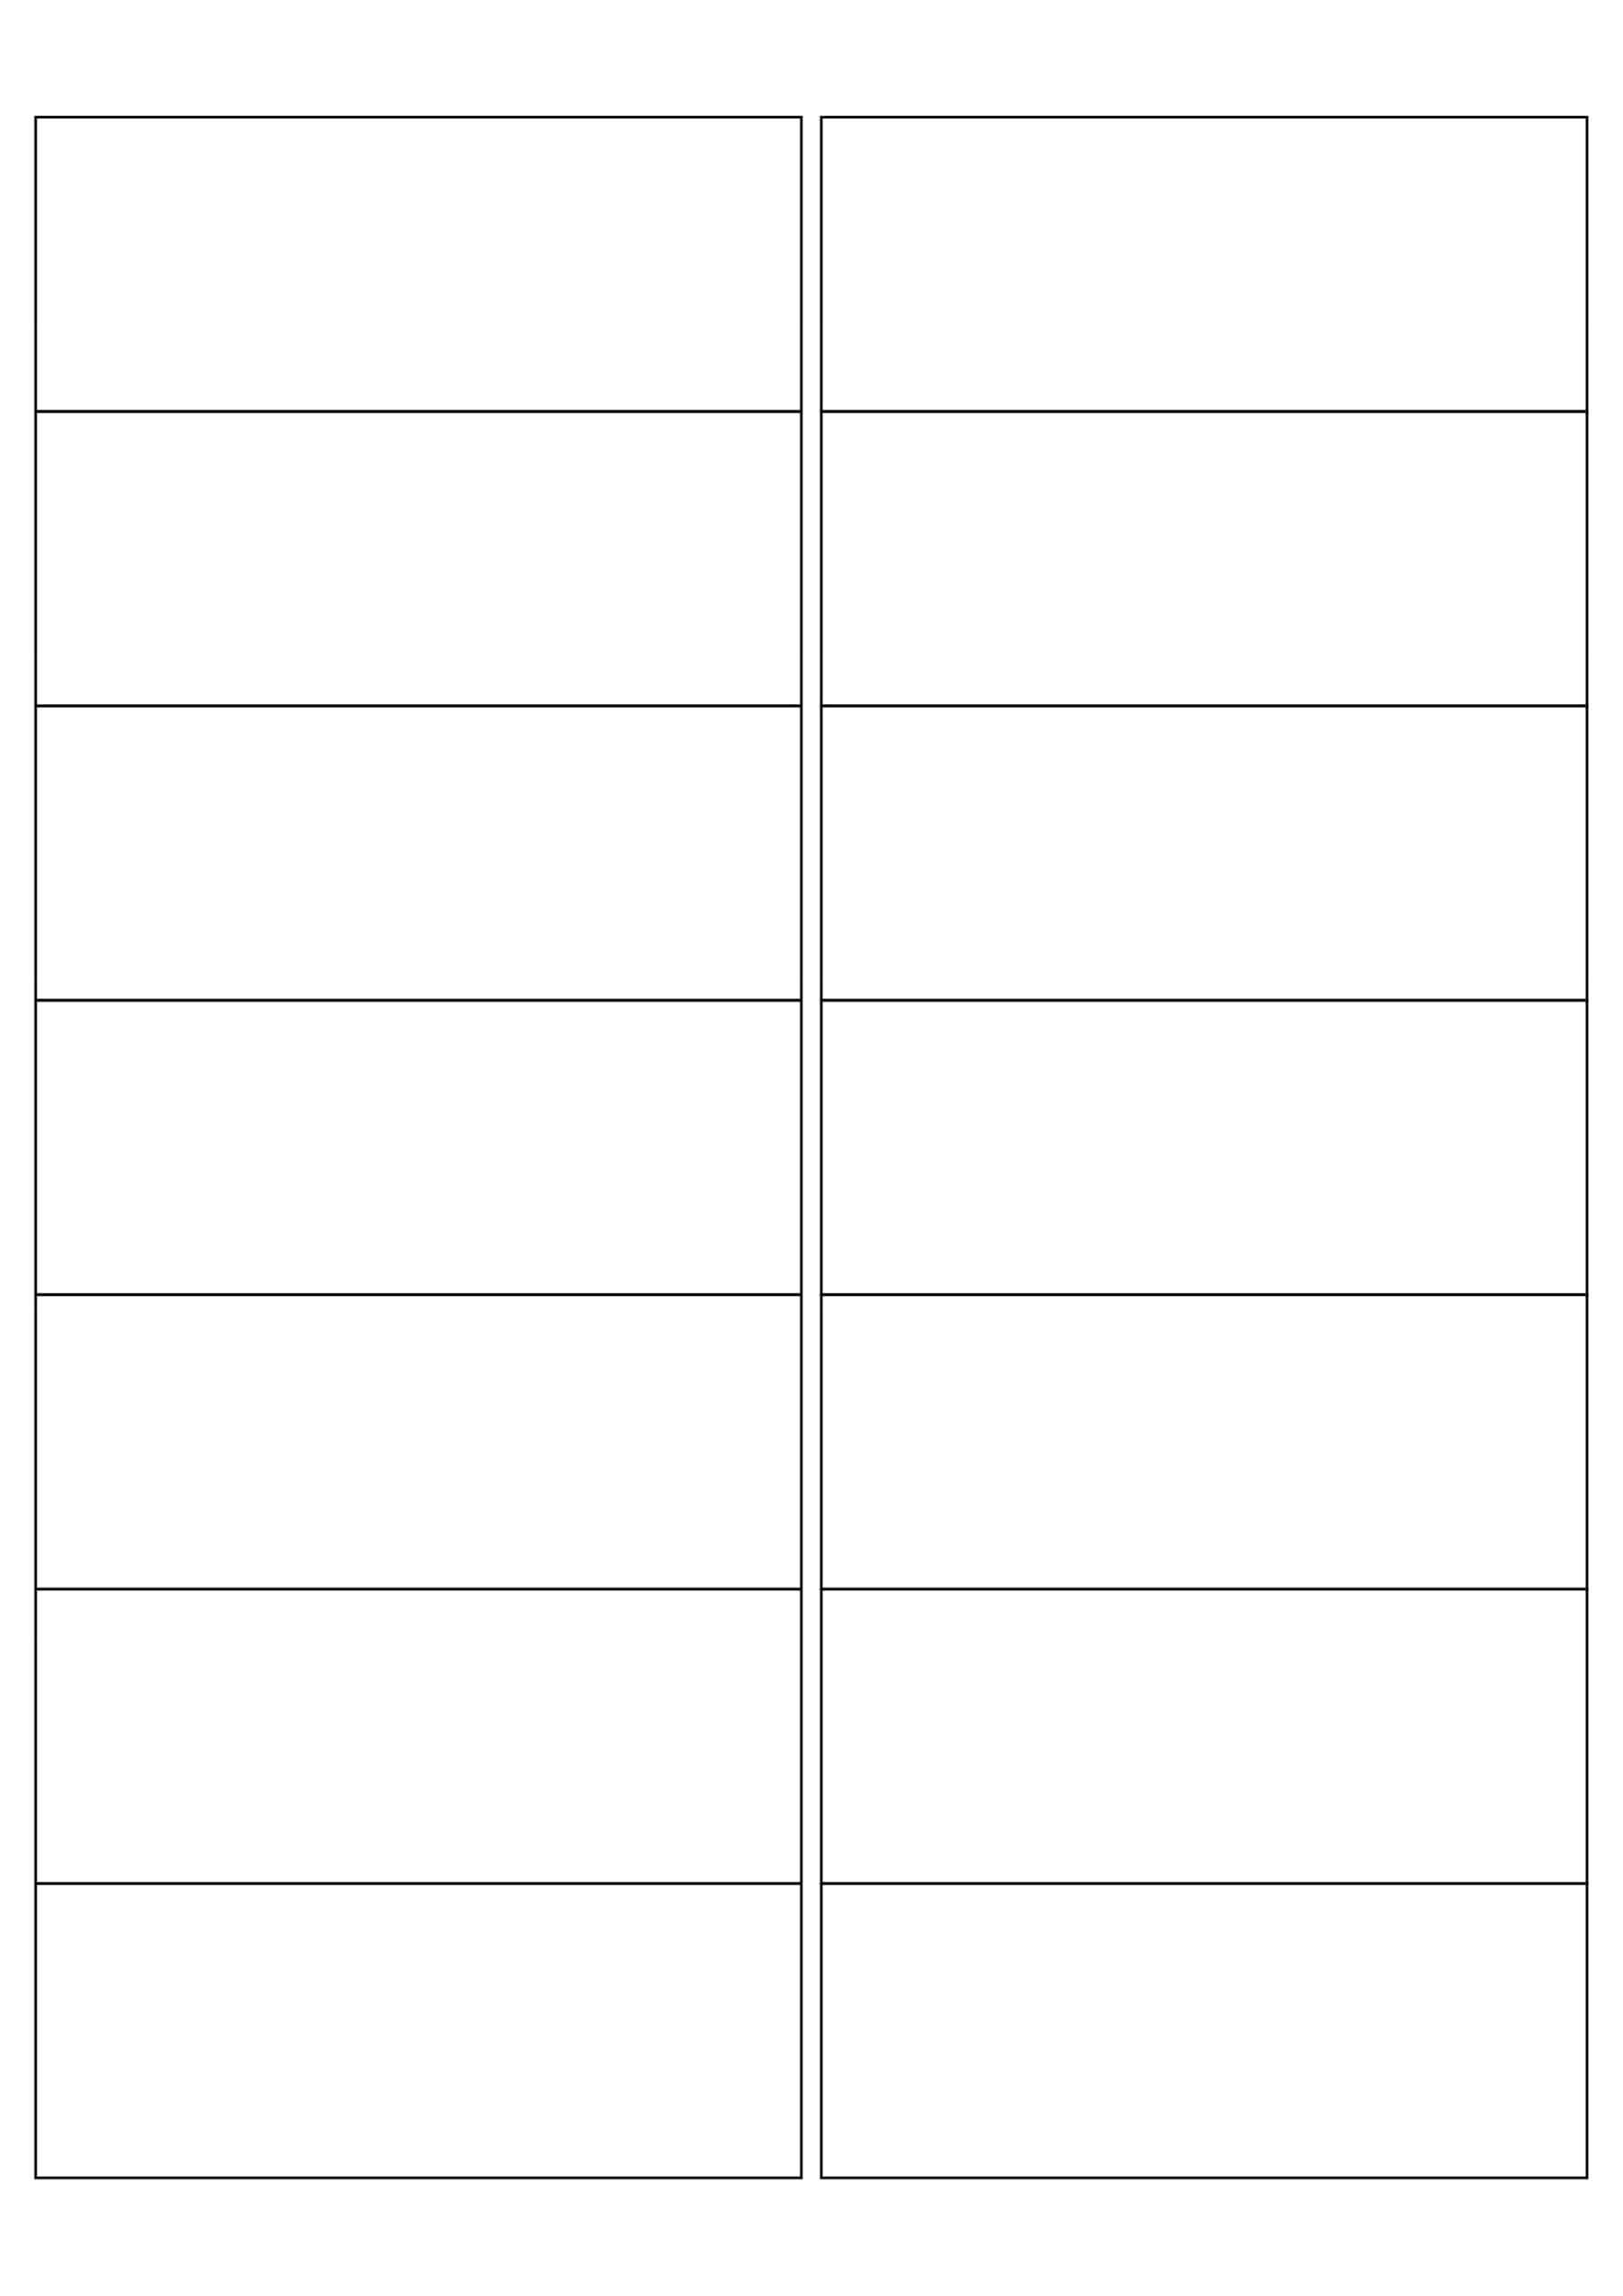 Mr114 – 99.1 X 38.1 Mm – A4 Sheet – 14 Rectangular Square Pertaining To 99.1 Mm X 38.1 Mm Label Template